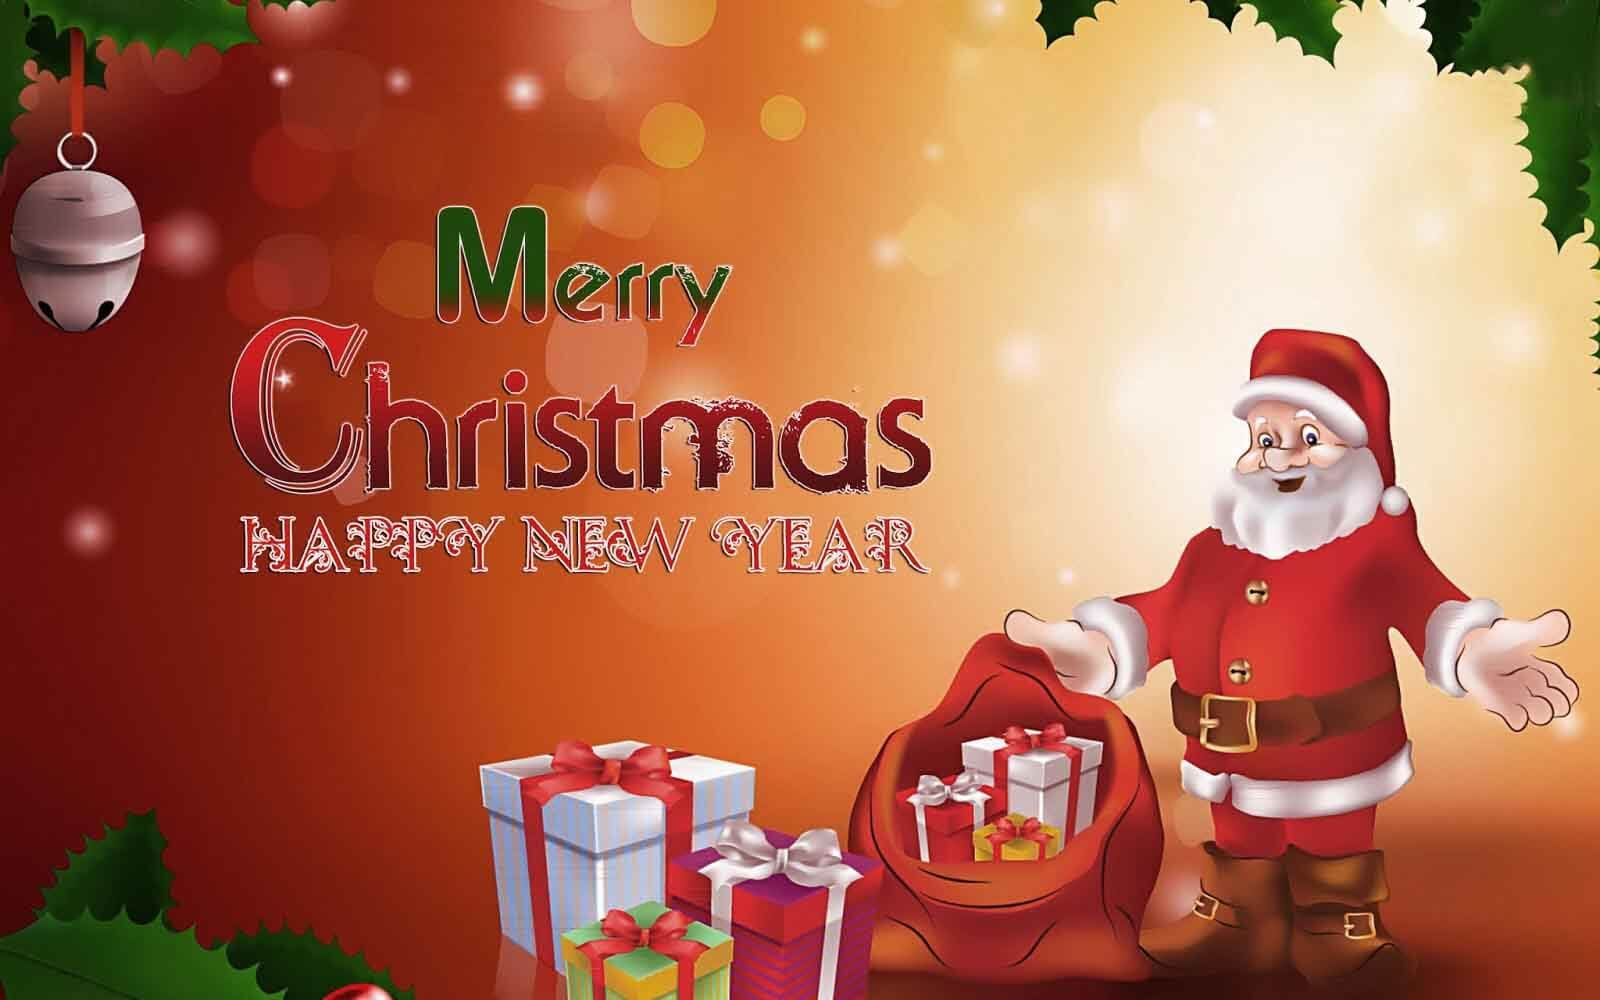 Christmas hd images wallpapers download merry christmas images merry christmas and new year images kristyandbryce Choice Image